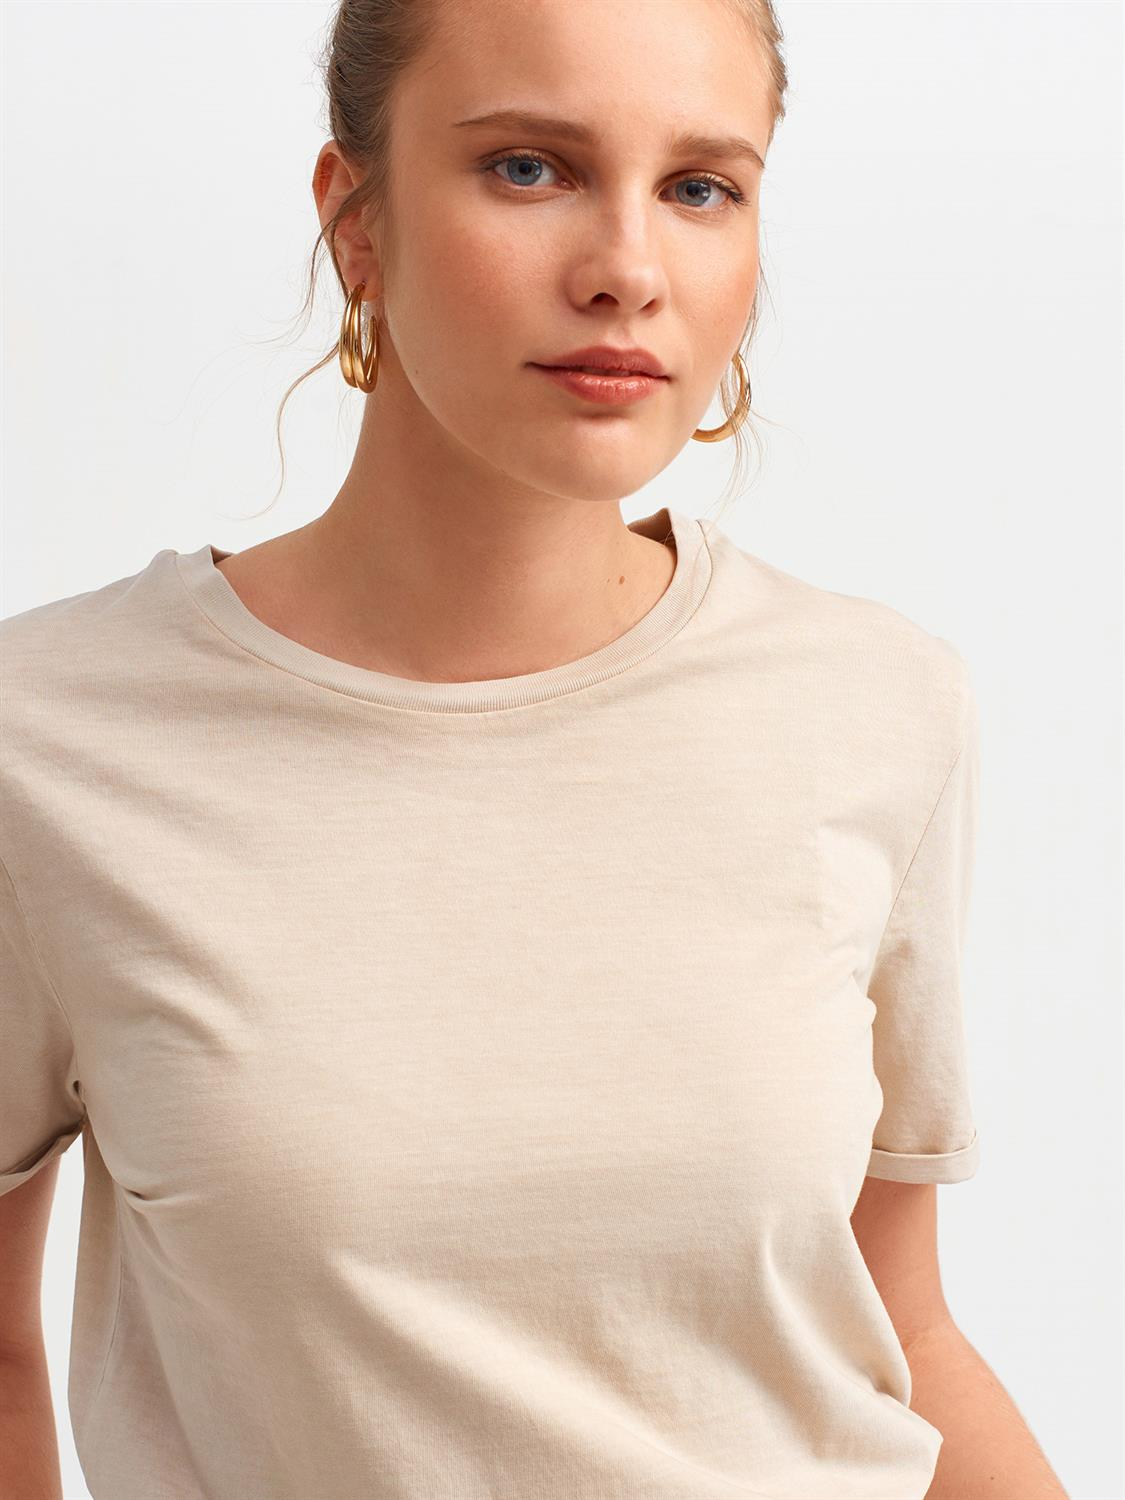 3535 Kol Duble Kıvırmalı Basic T-Shirt-Bej